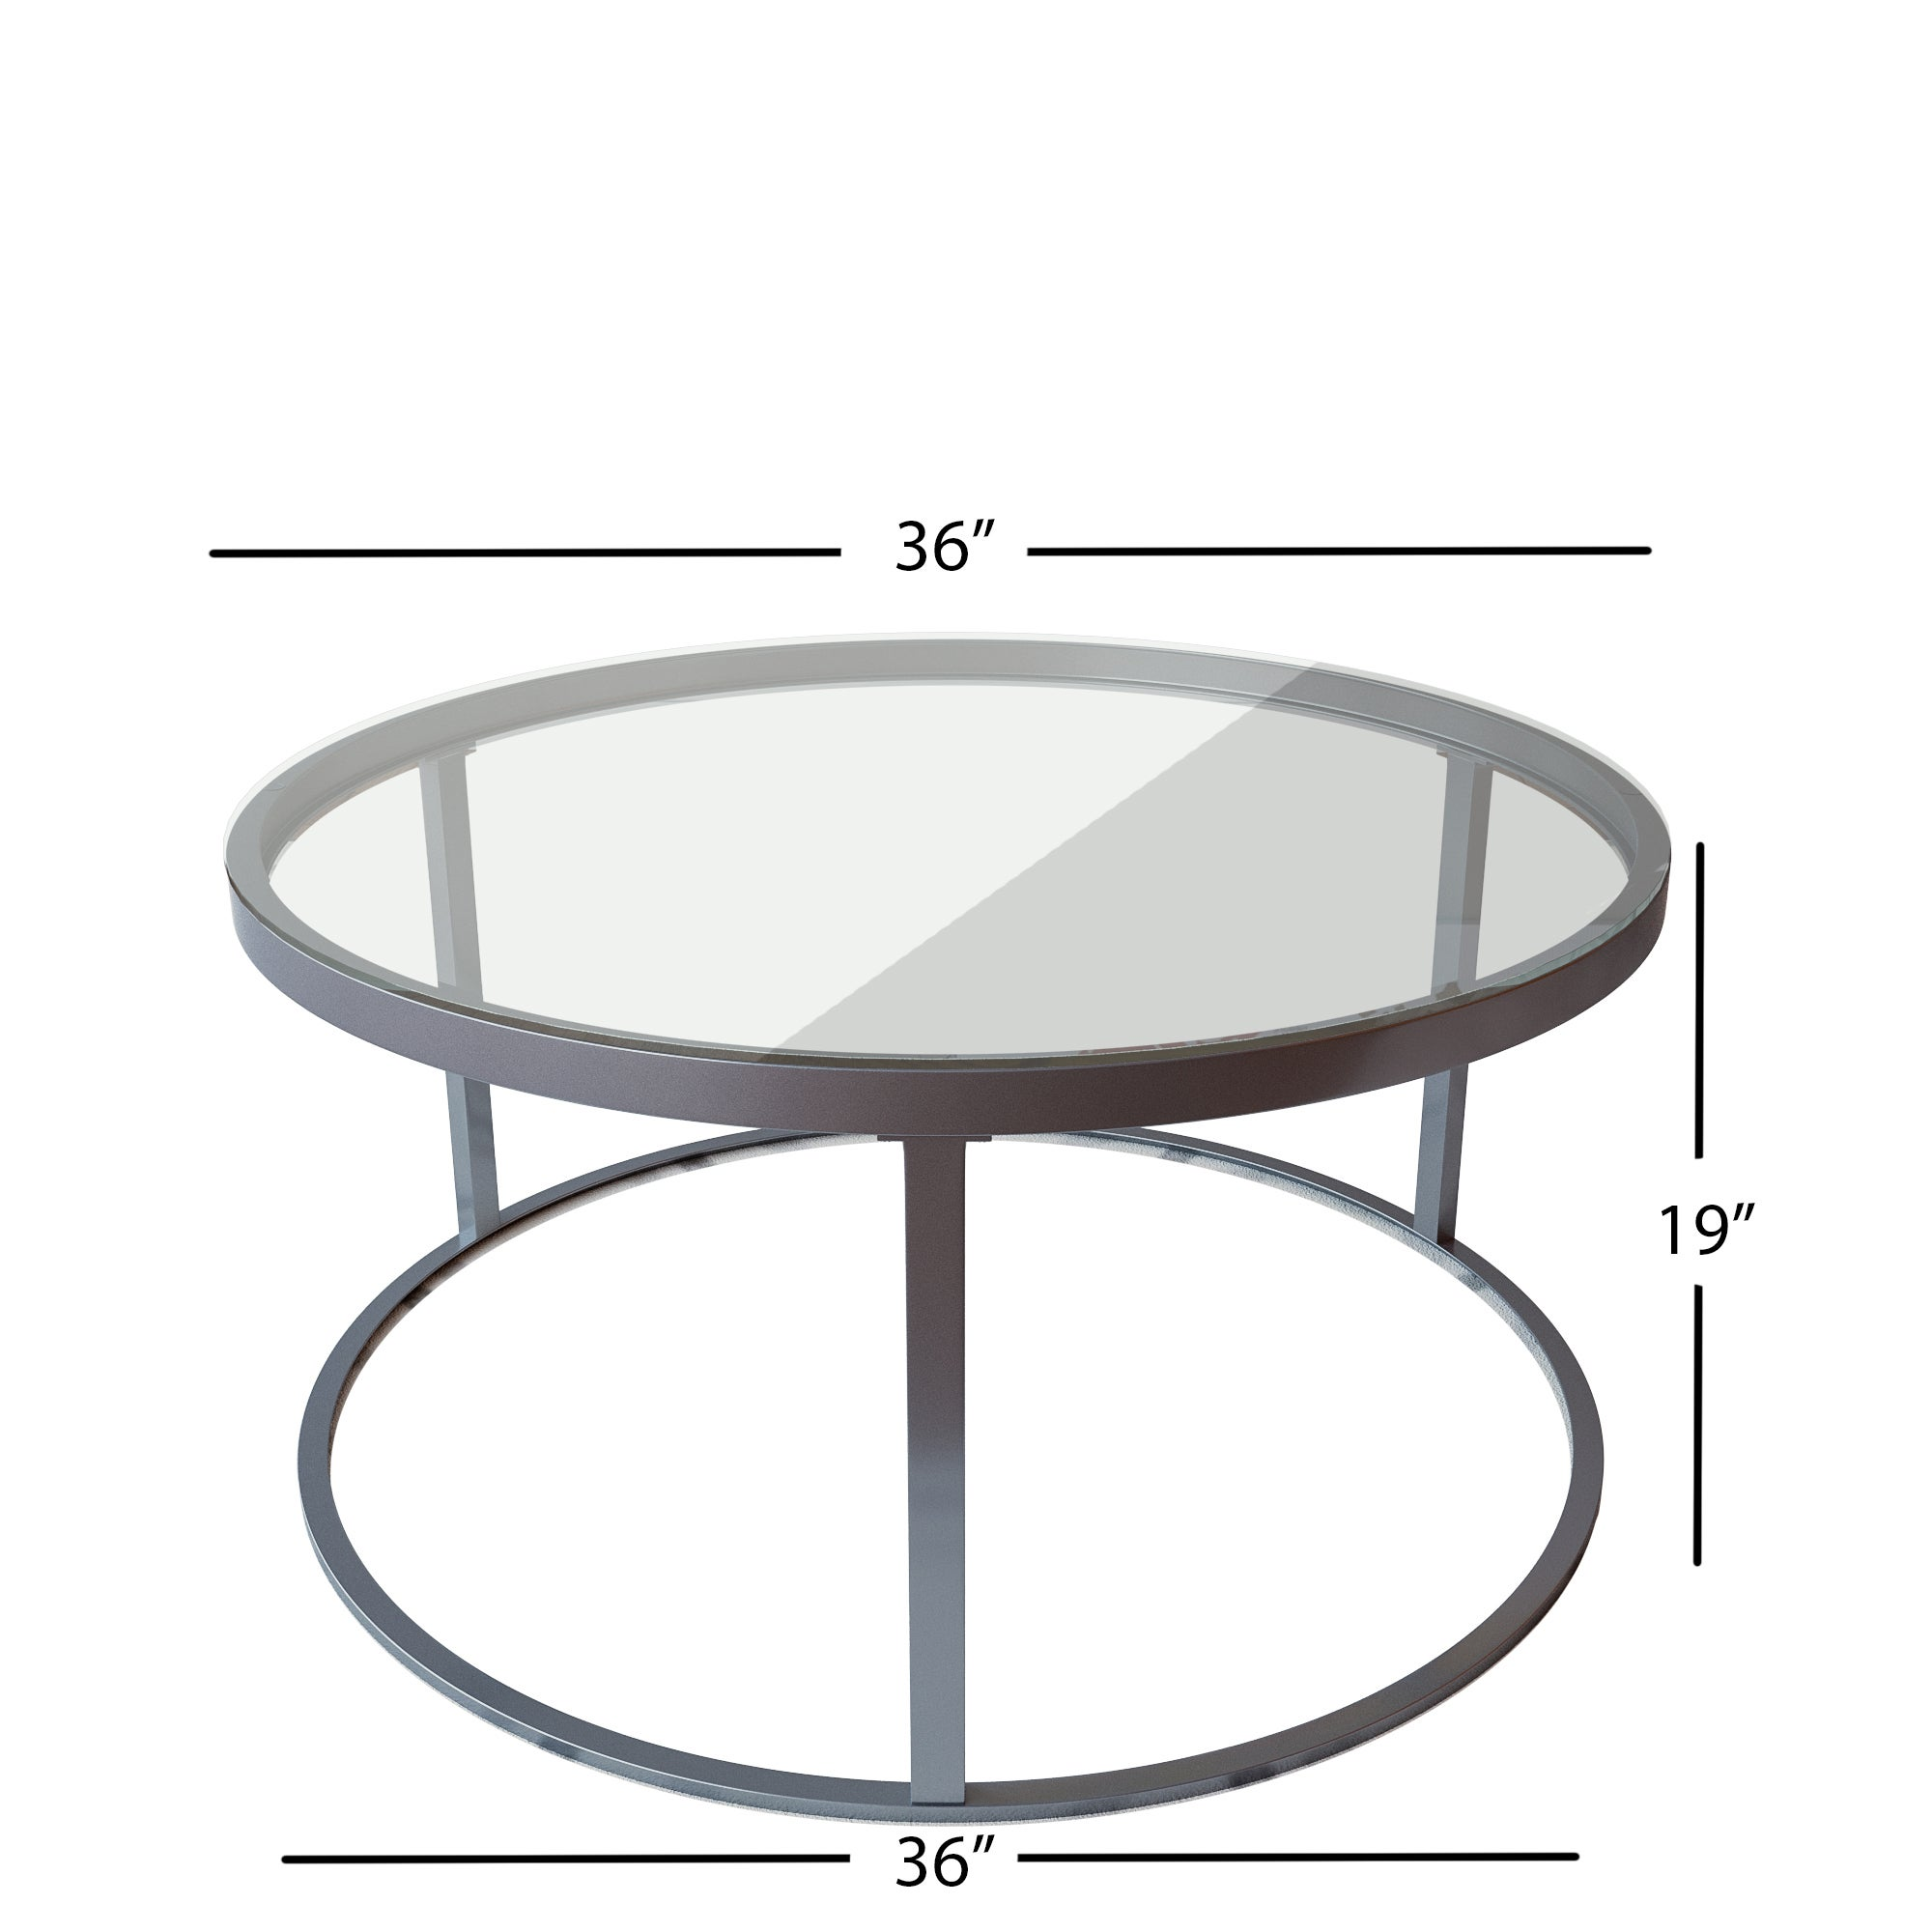 round glass top metal coffee table  free shipping today  overstockcom . round glass top metal coffee table  free shipping today